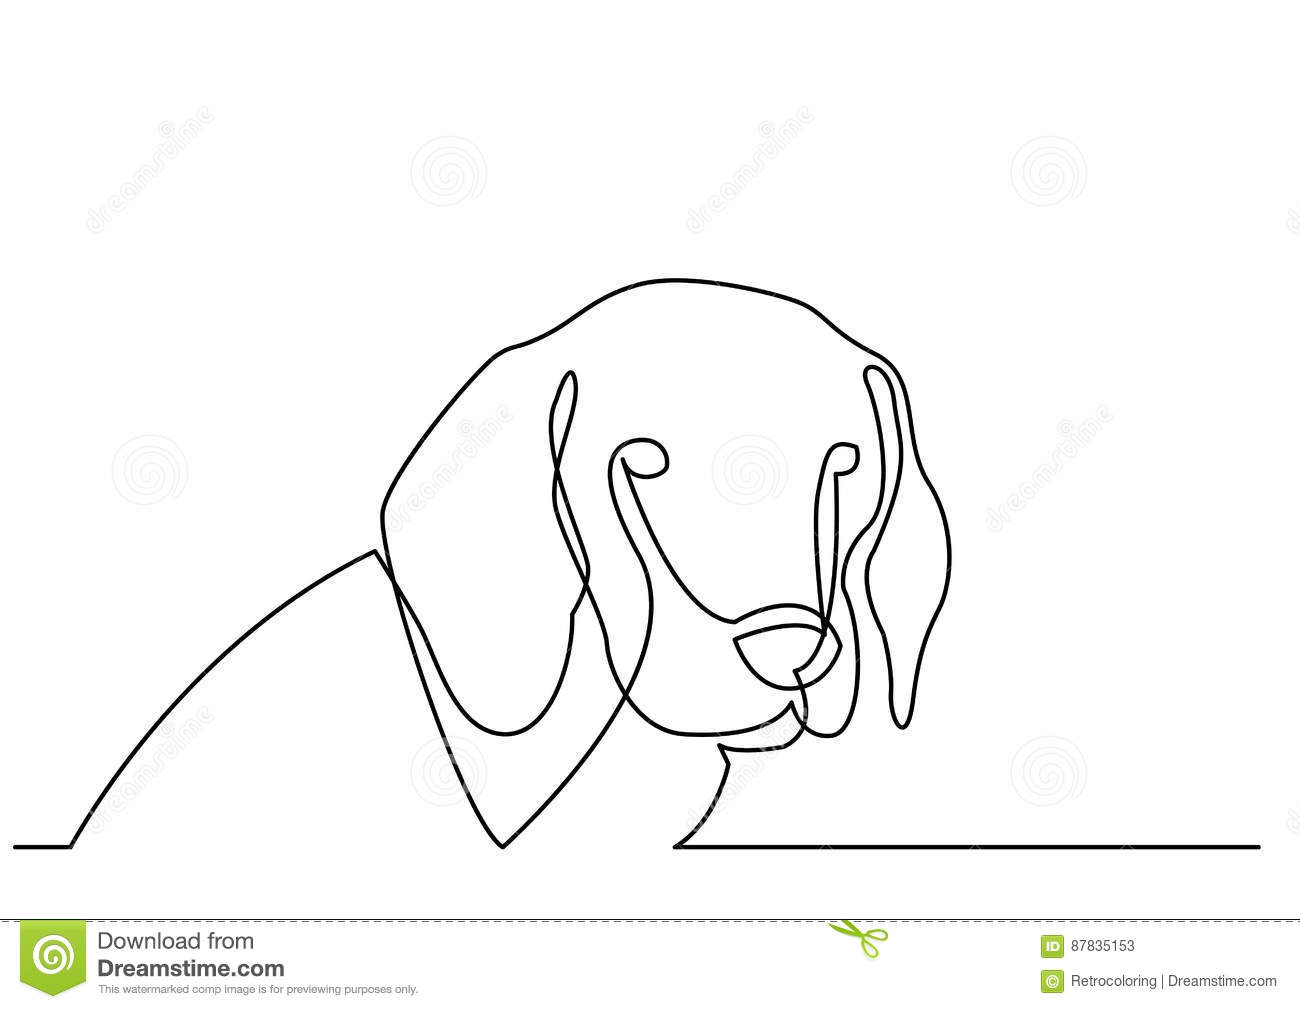 Continuous Line Drawing Easy : Continuous line drawing of portrait dog stock vector